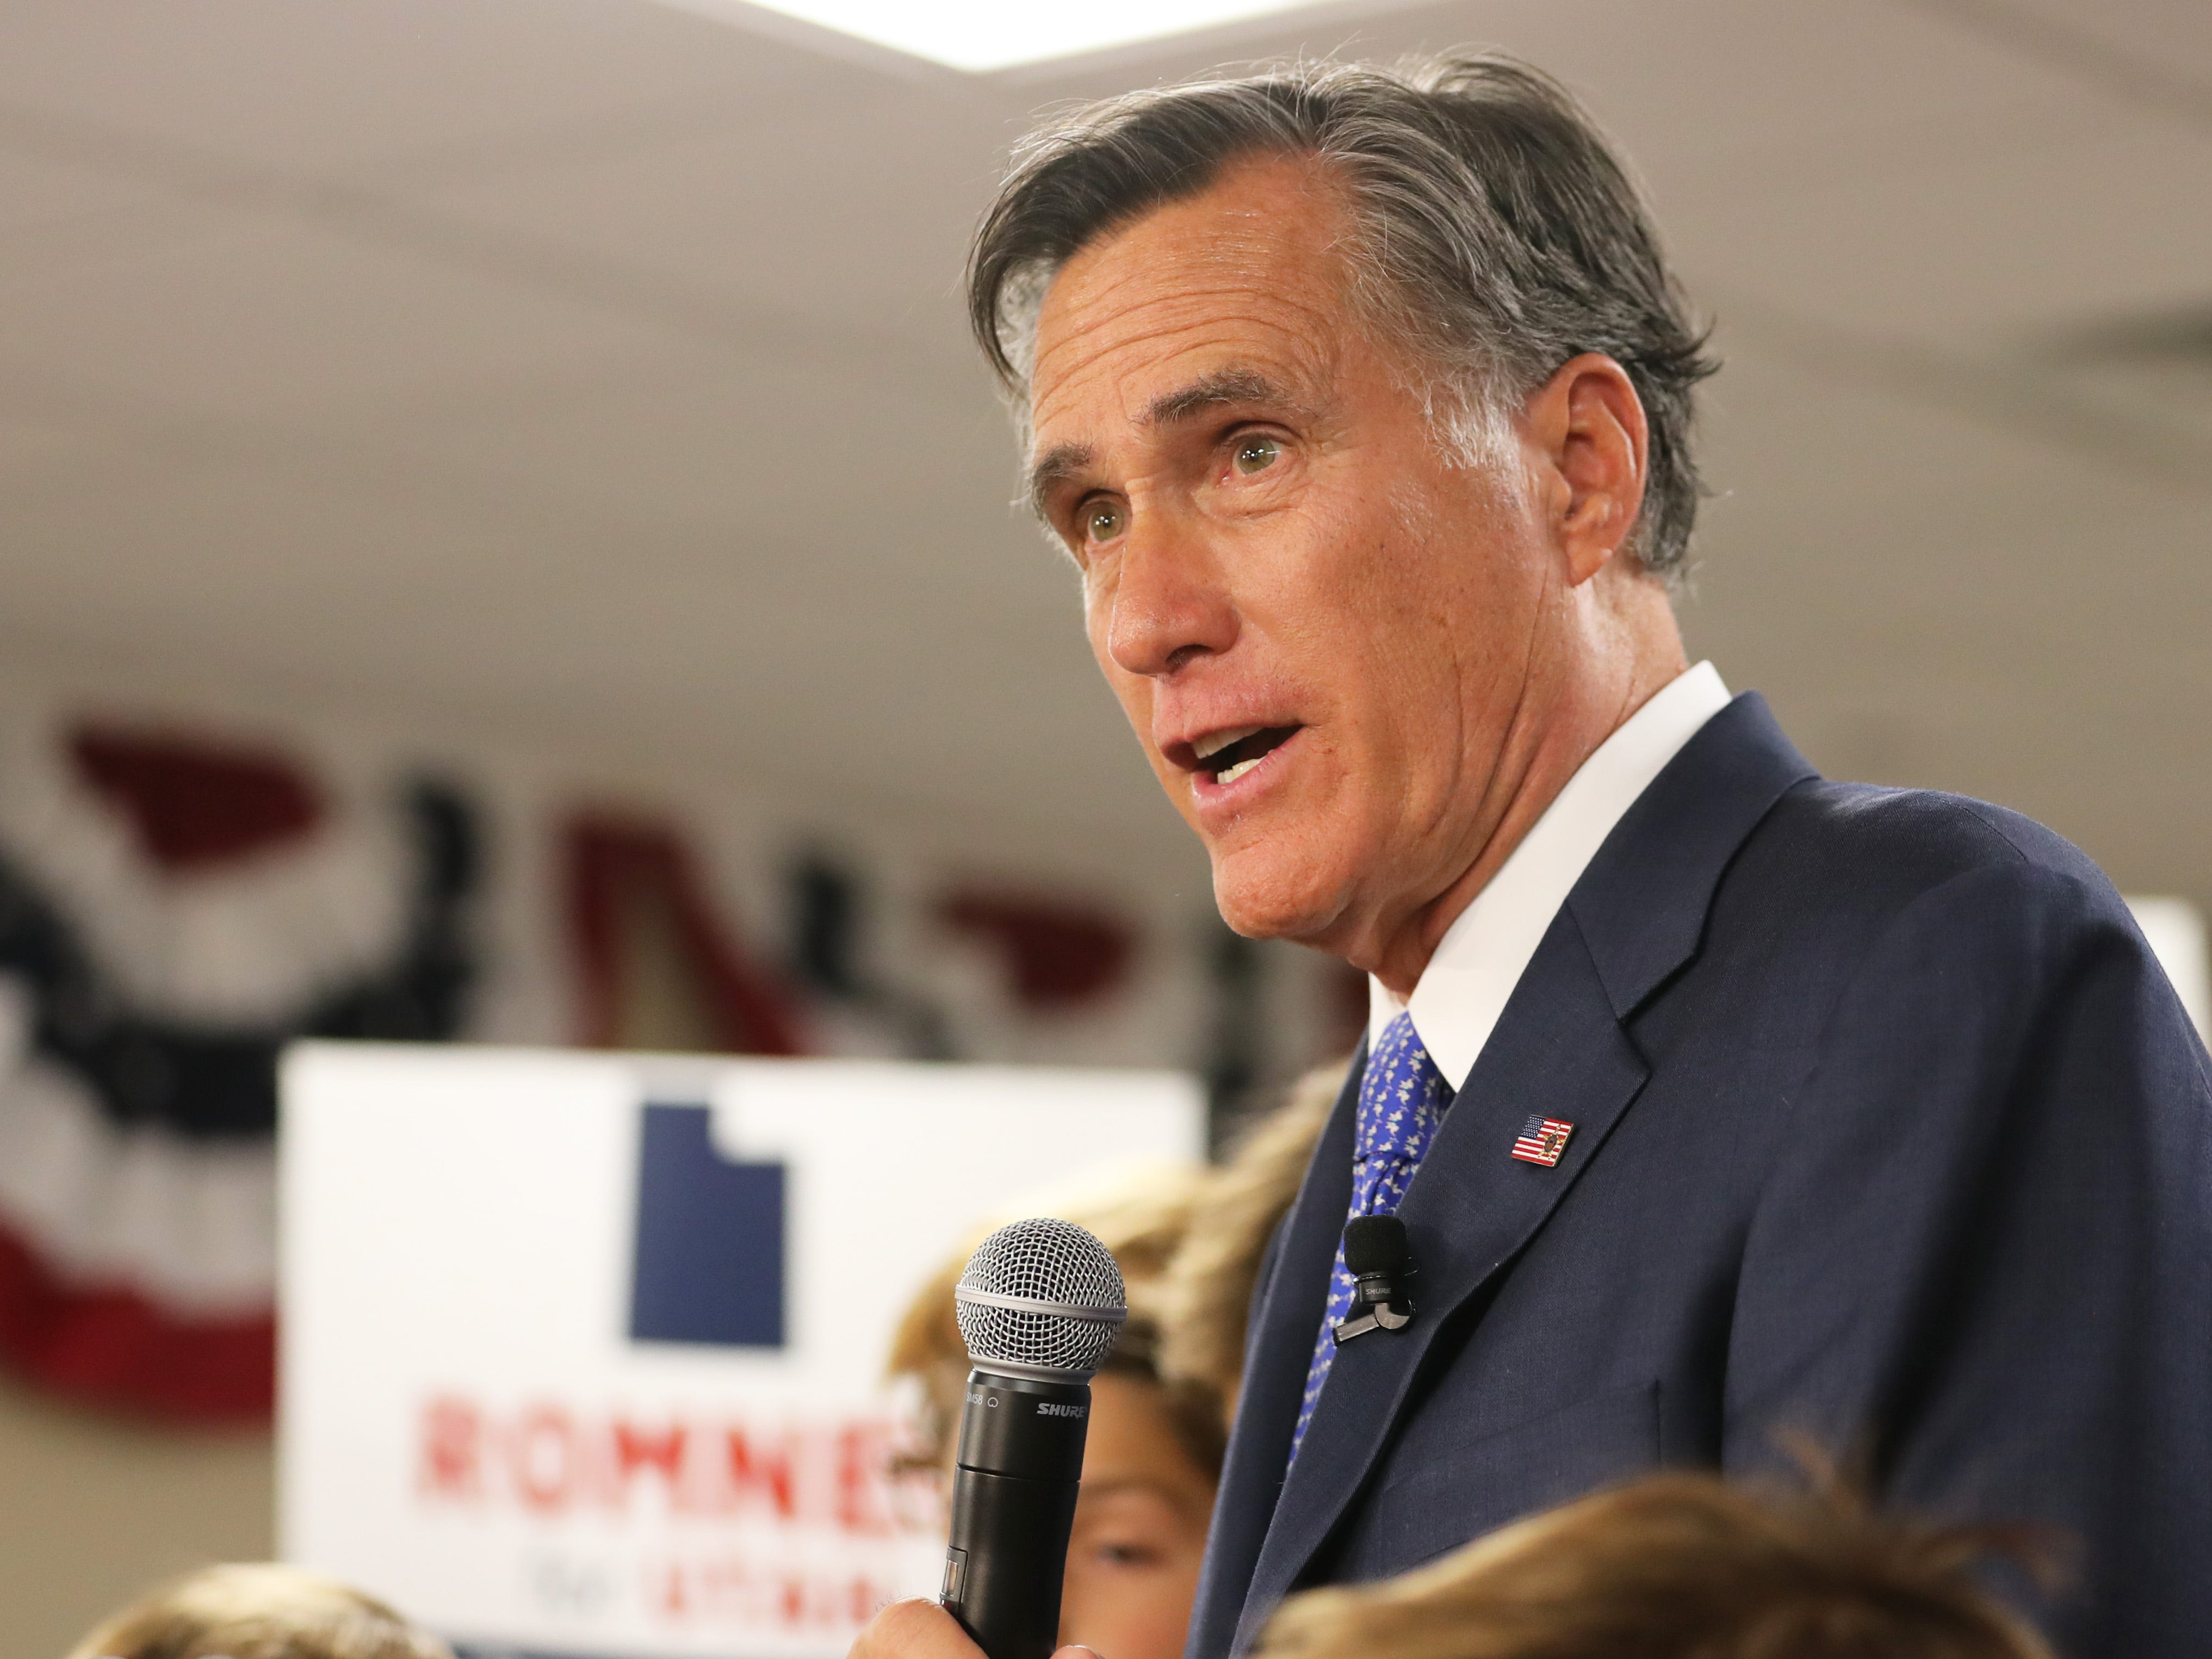 Romney: Trump is wrong to vilify the press. It's not the enemy, it's critical to democracy.